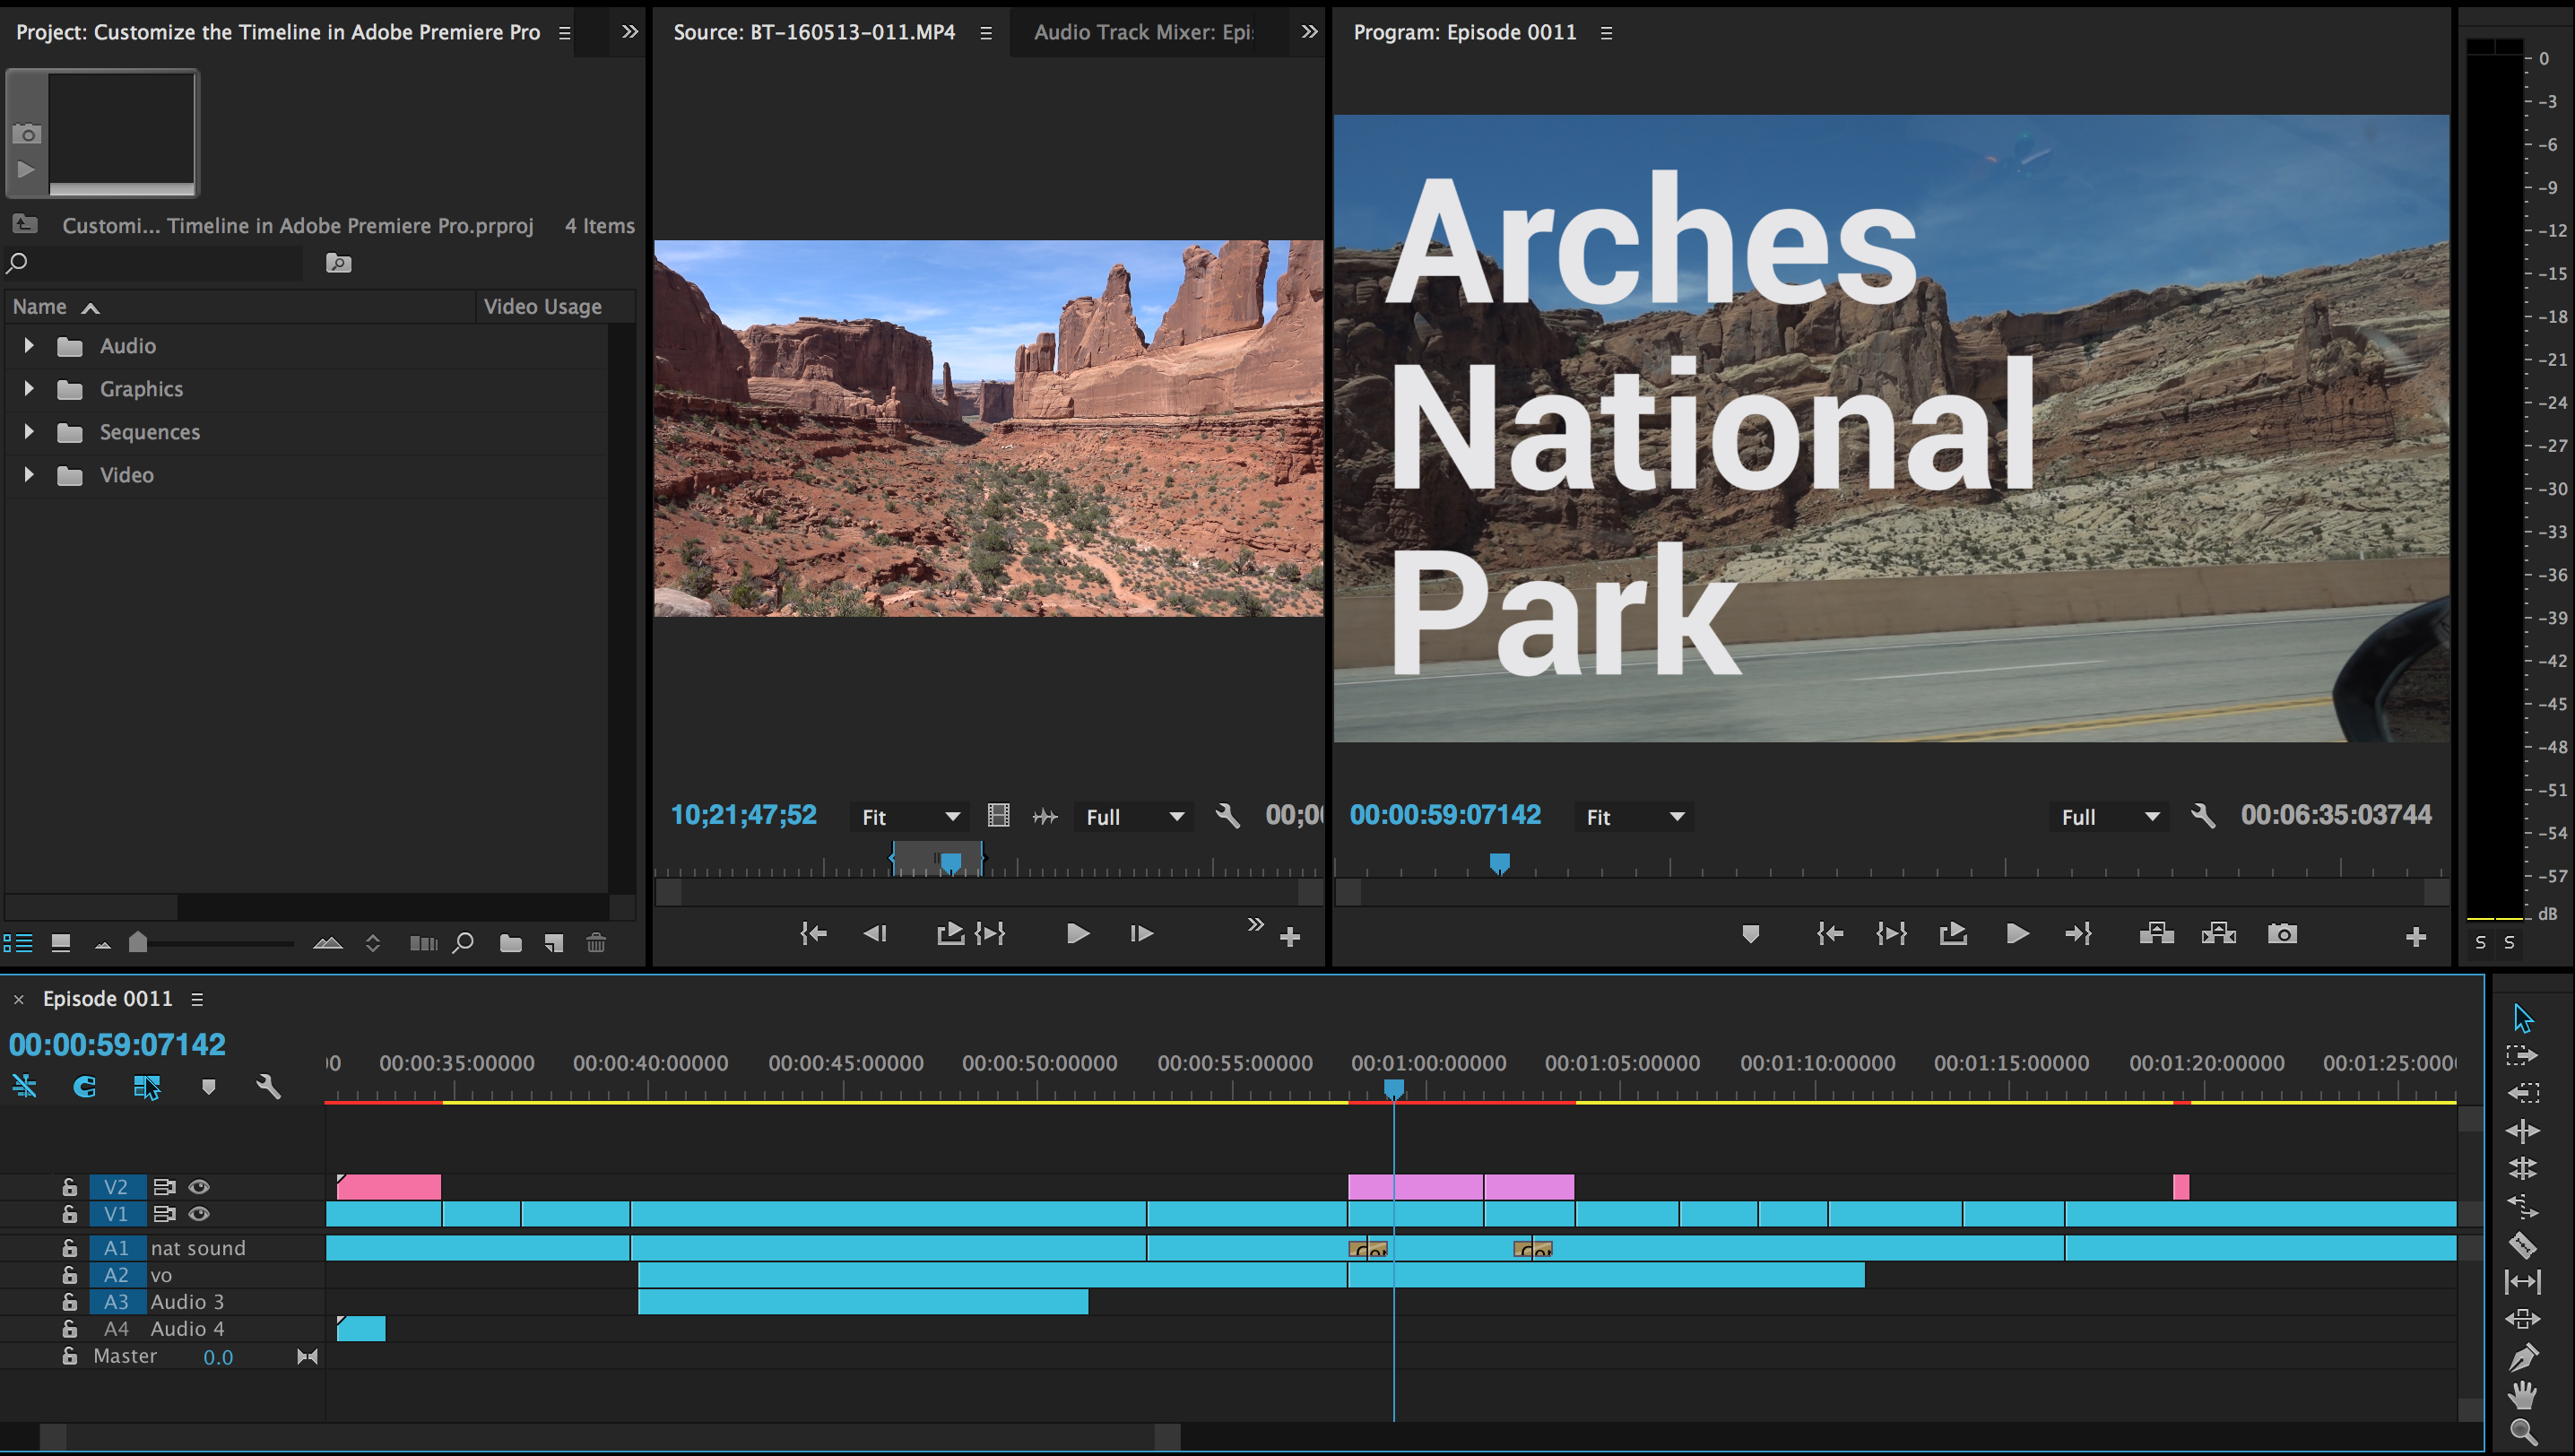 Customize Adobe Premiere Pro Timeline